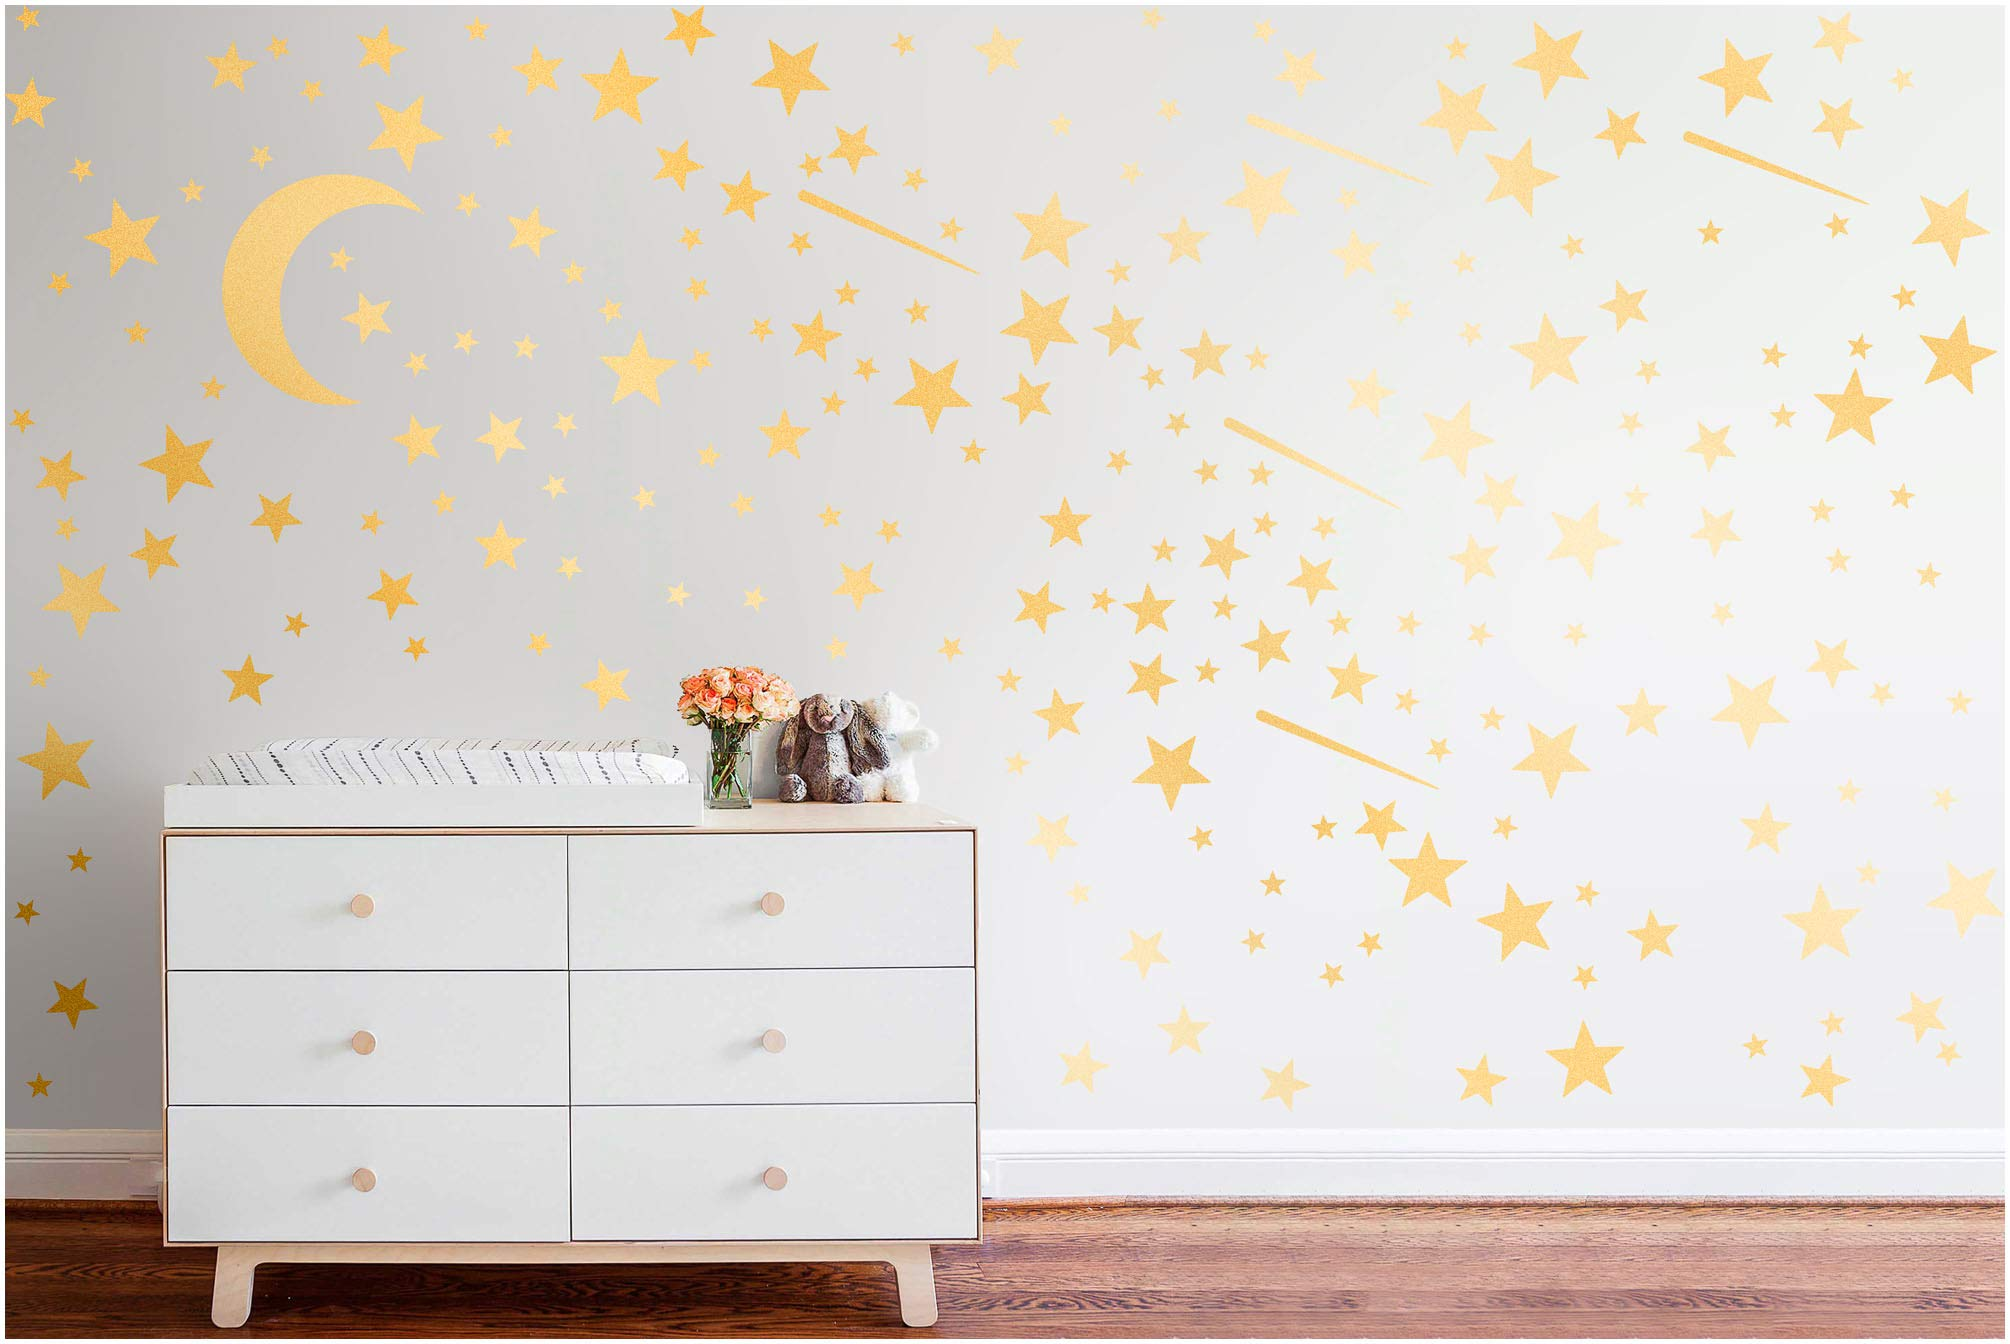 PapaKit Twinkle Little Stars & Moon Wall Decal (Champagne Gold, 200 Assorted Stickers) Baby Nursery Child Kid Teen Girl Boy Room Home Decor | Creative Art Design Pattern | Safe Removable Adhesive